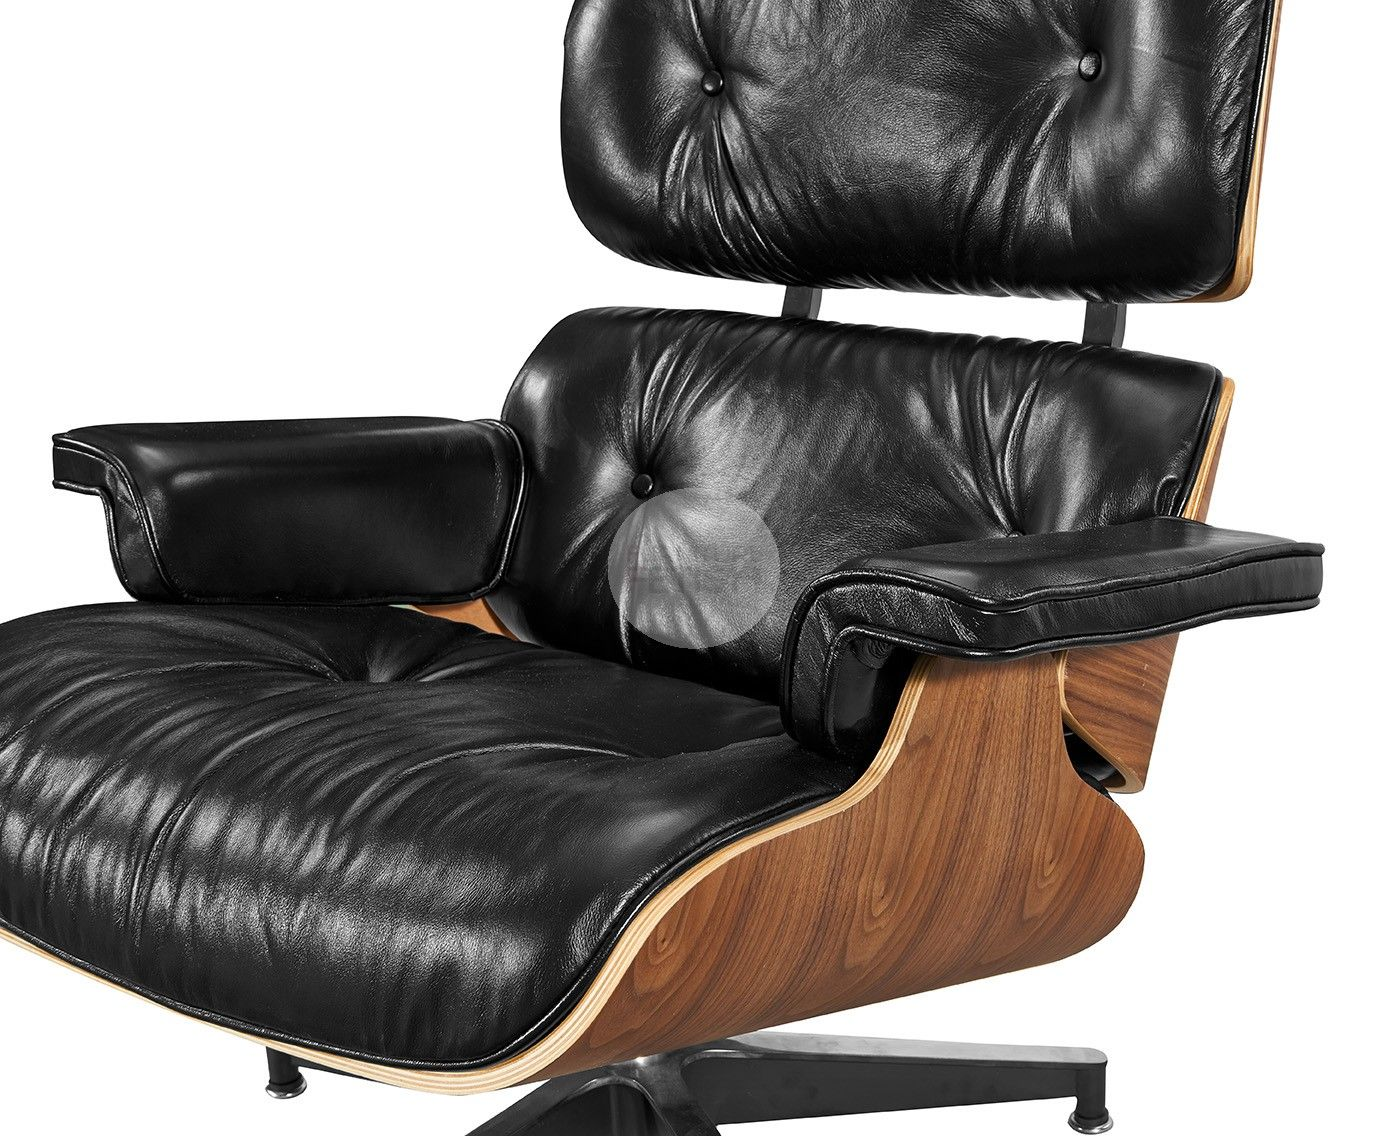 Prime Replica Lounge Eames Chair Ottoman Aniline Leather Camellatalisay Diy Chair Ideas Camellatalisaycom